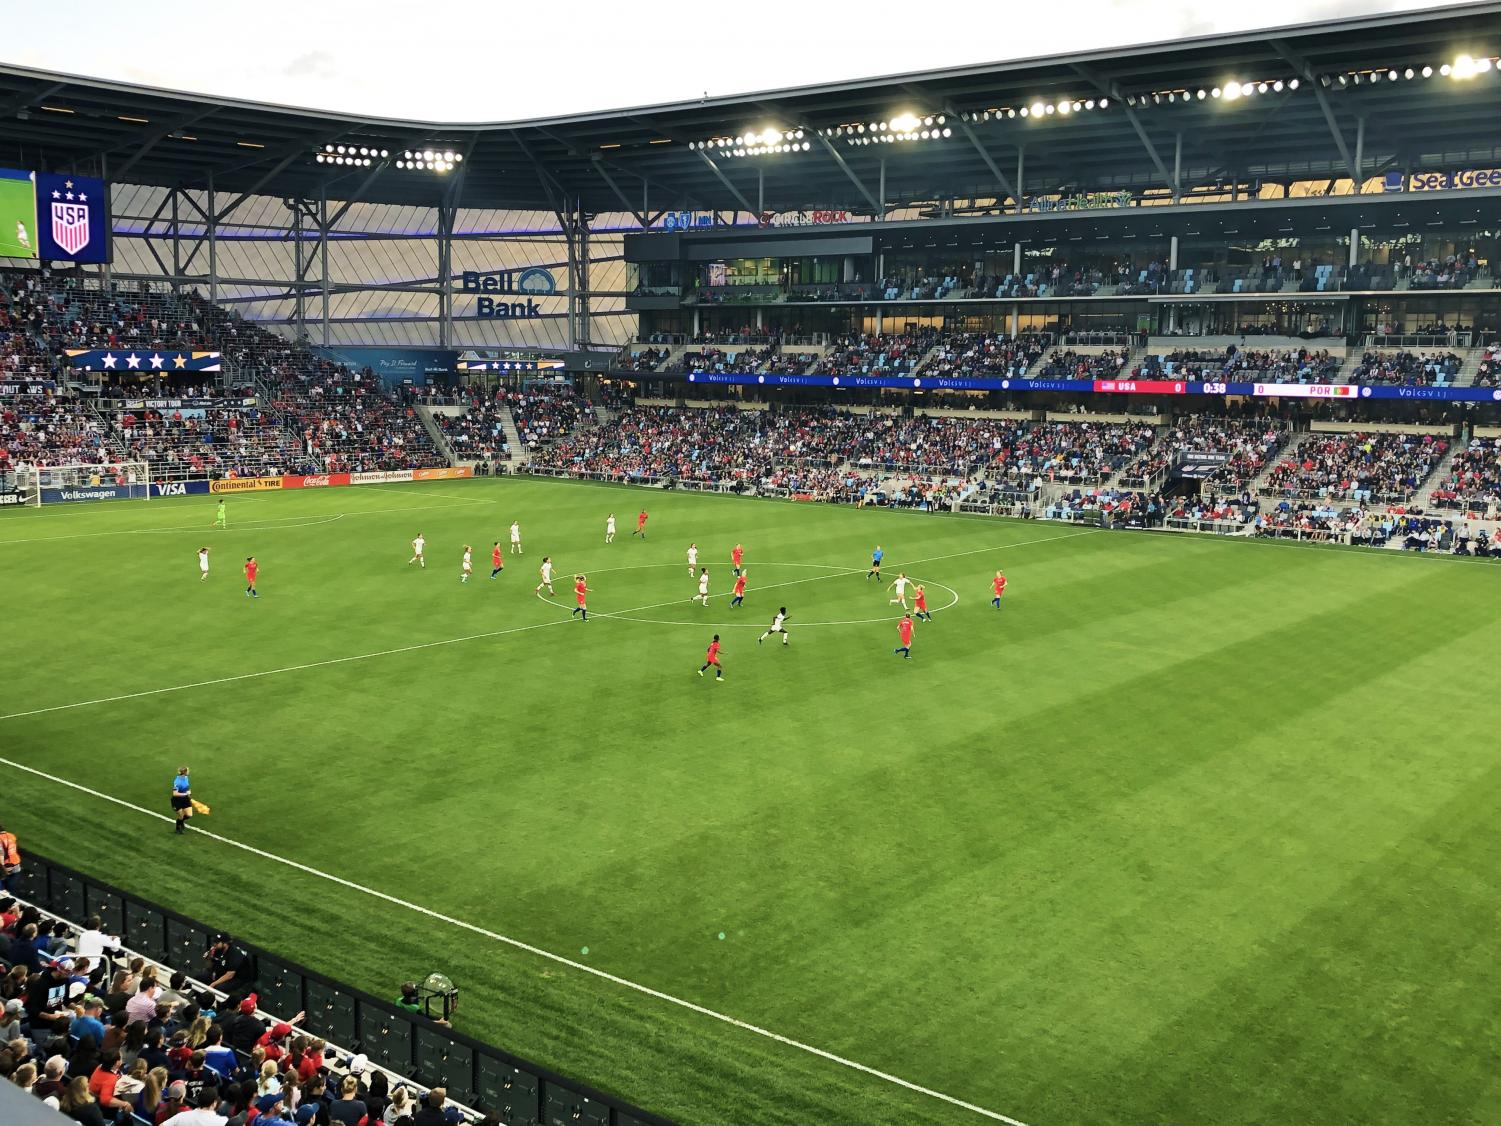 The USWNT takes on Portugal at Allianz Field. The world champion USWNT defeated Portugal 3-0. Photo by Lily Denehy '22.